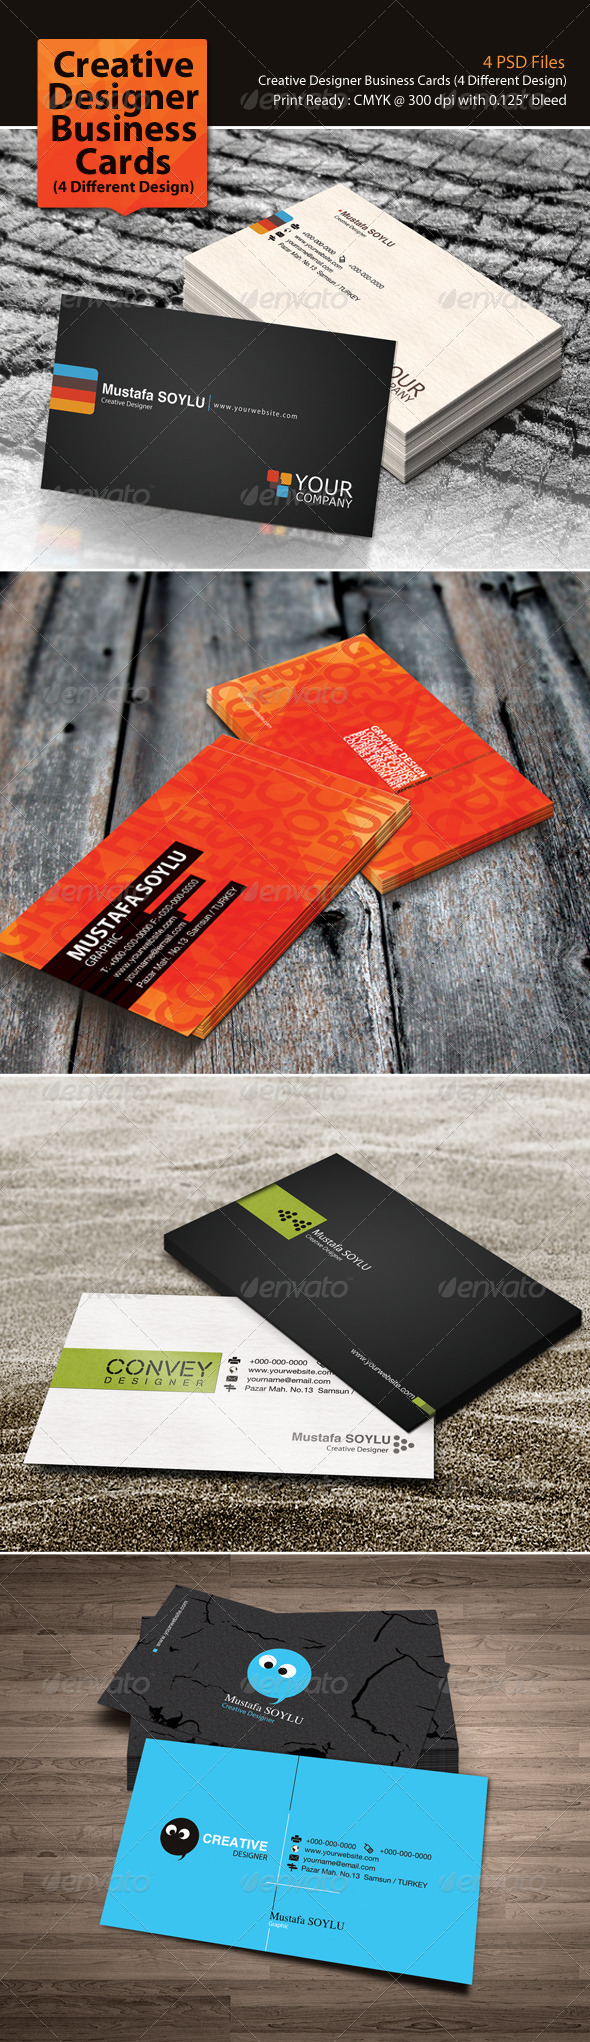 GraphicRiver Creative Designer Business Cards Pack 3187399